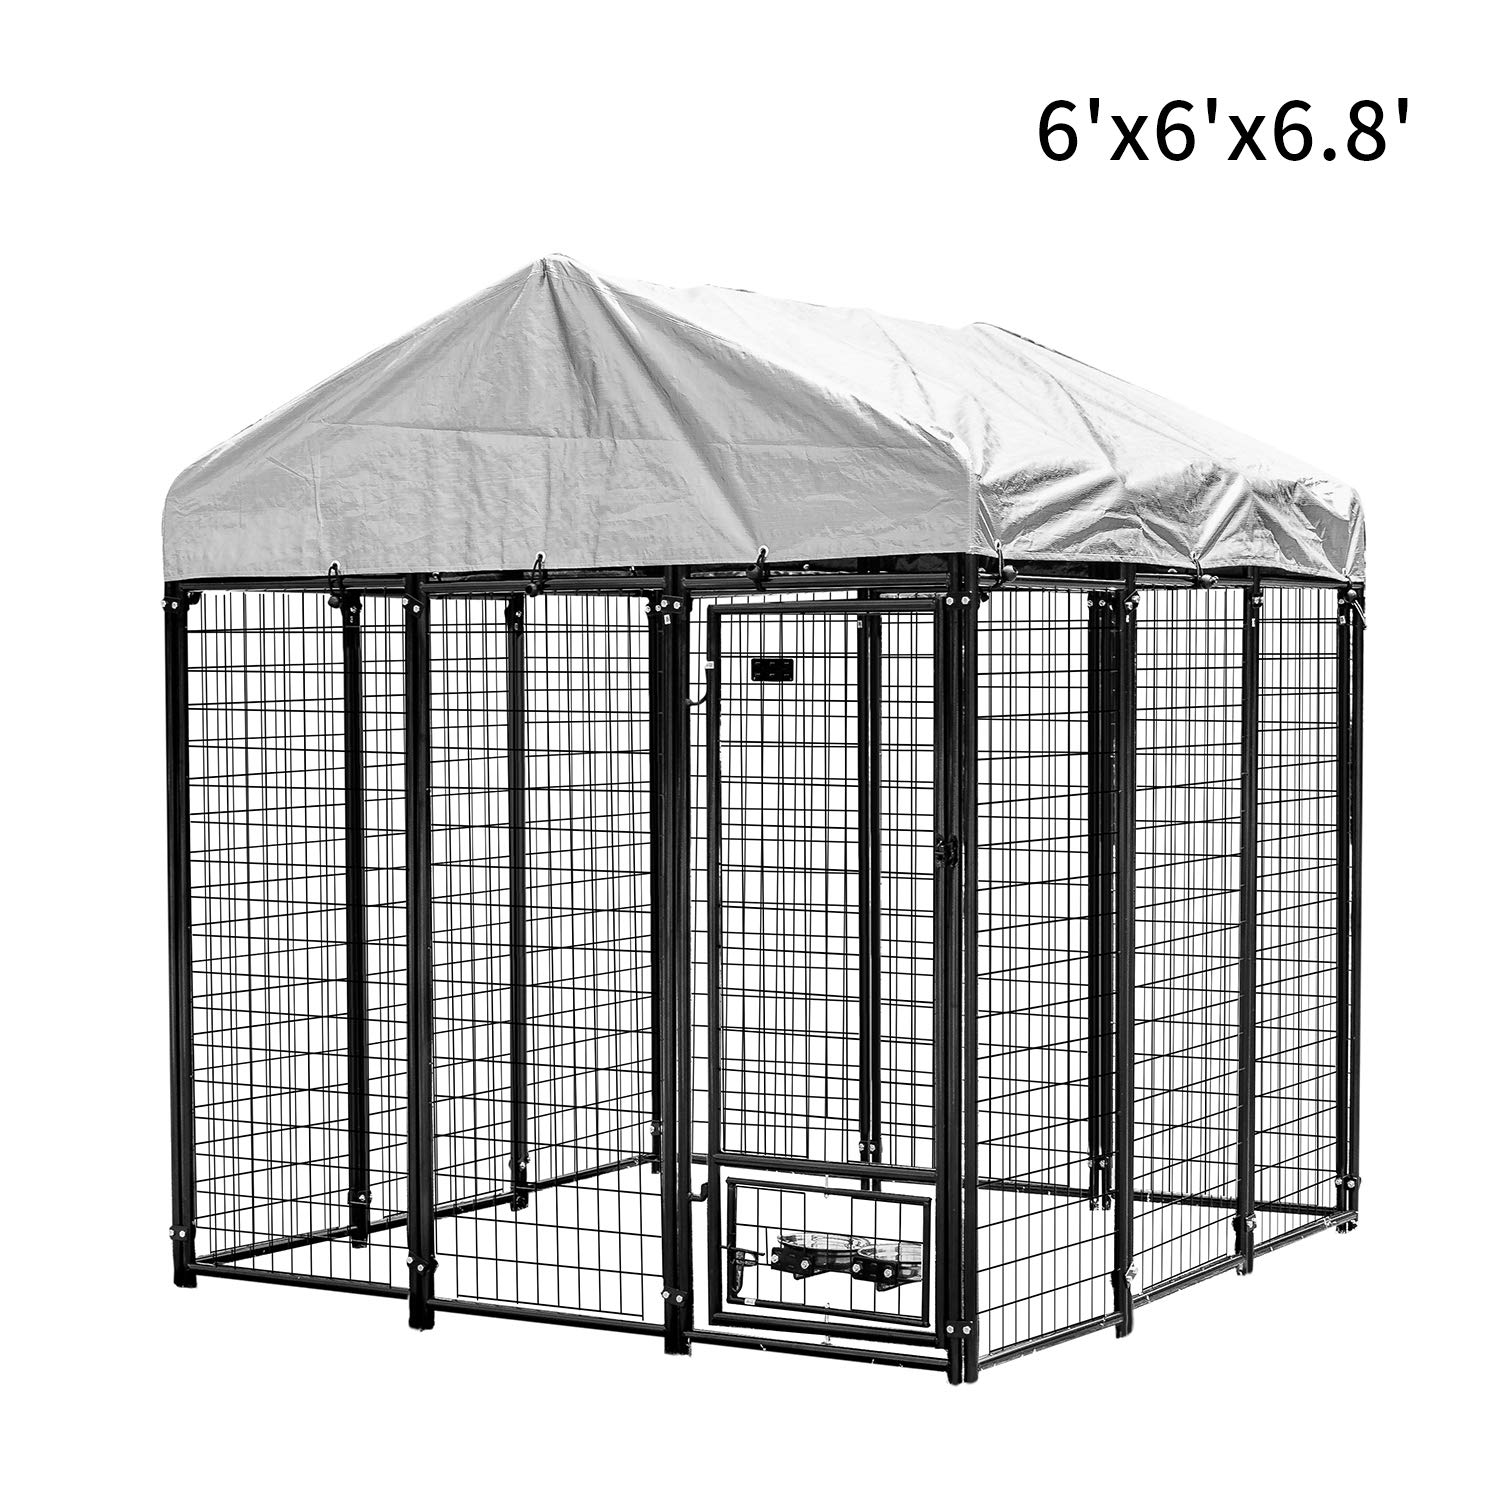 Pupzo Welded Wire Dog Kennel,Outdoor Heavy Duty Pet Kennel with UV Protection and Waterproof Trap Cover Automatic Lock Rotatable Window 2 Stainless Steel Bowls Black (6'x6'x6.8') by Pupzo